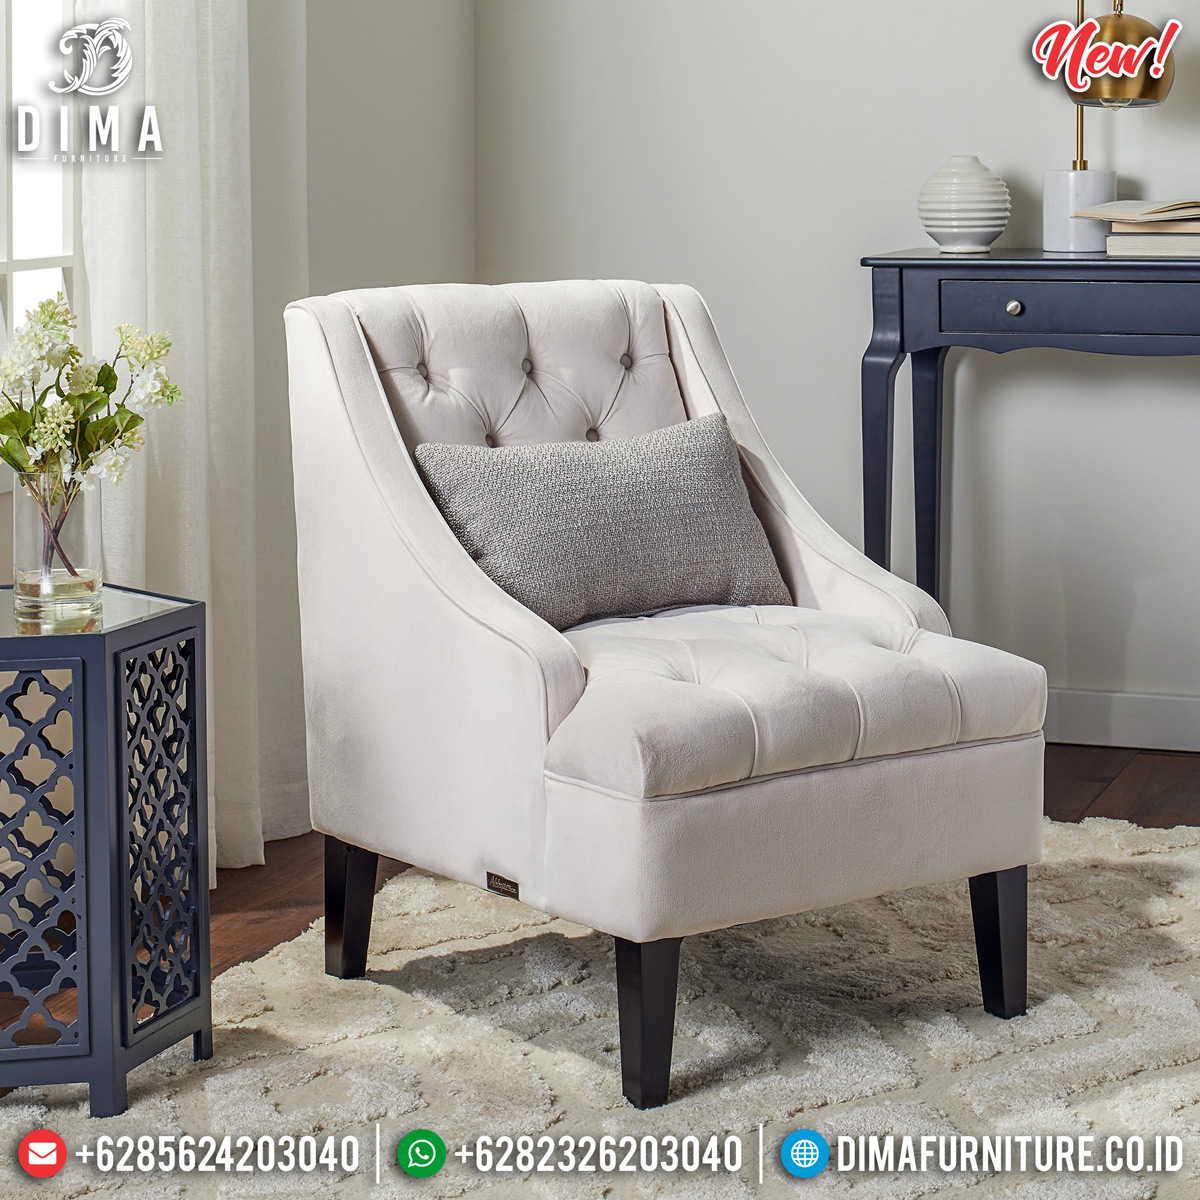 Sofa Minimalis Modern Jepara New Single Seater Beautiful Design TTJ-0812